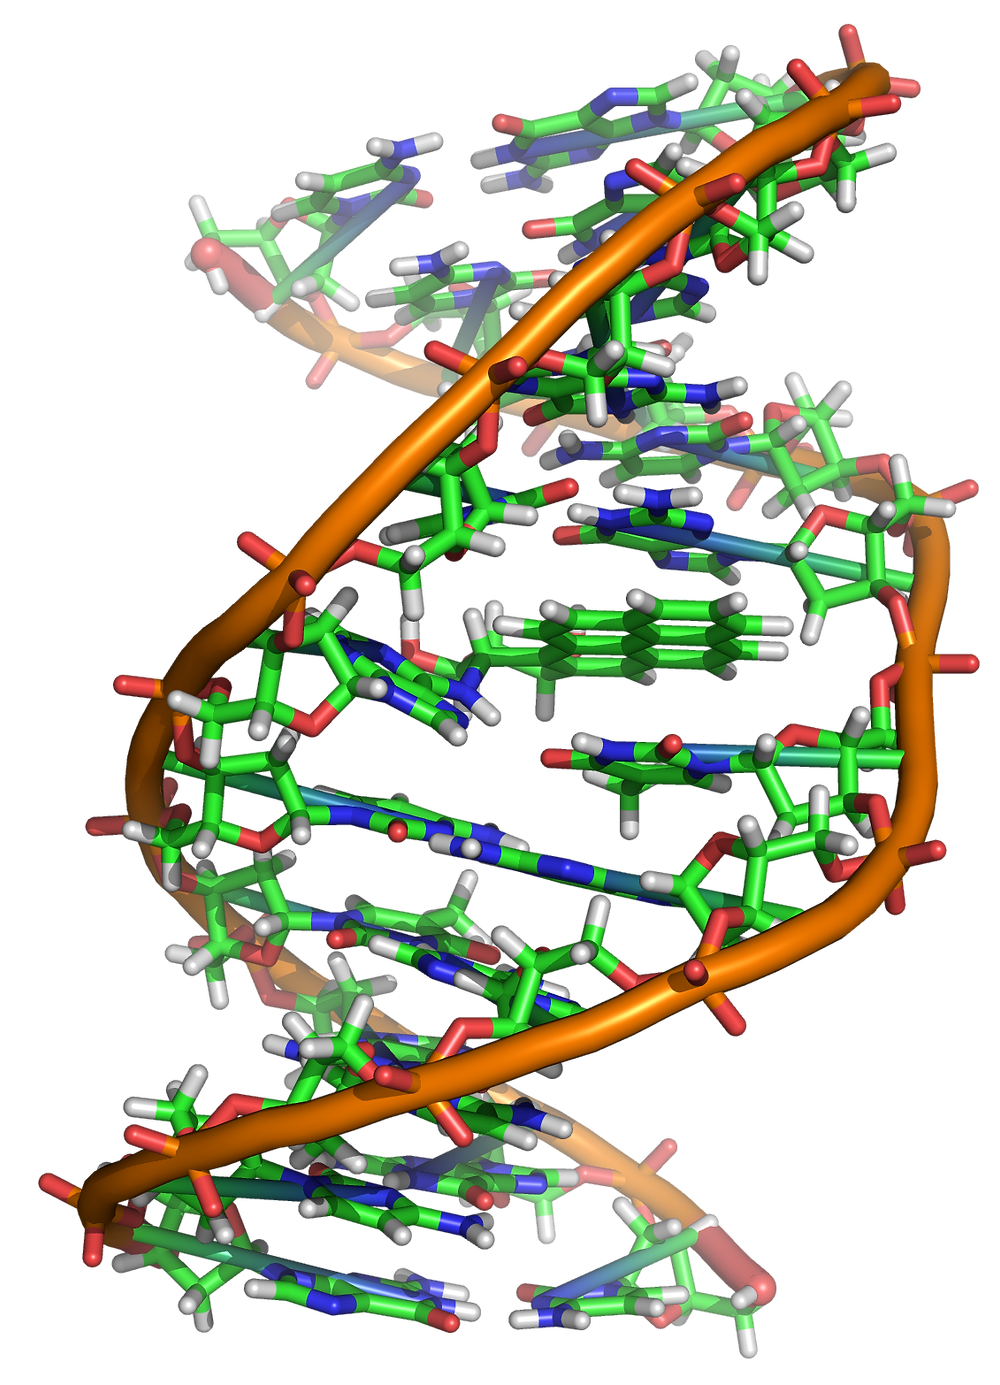 Benzopyrene_DNA_adduct_1JDG.png. courtesy of wikipedia